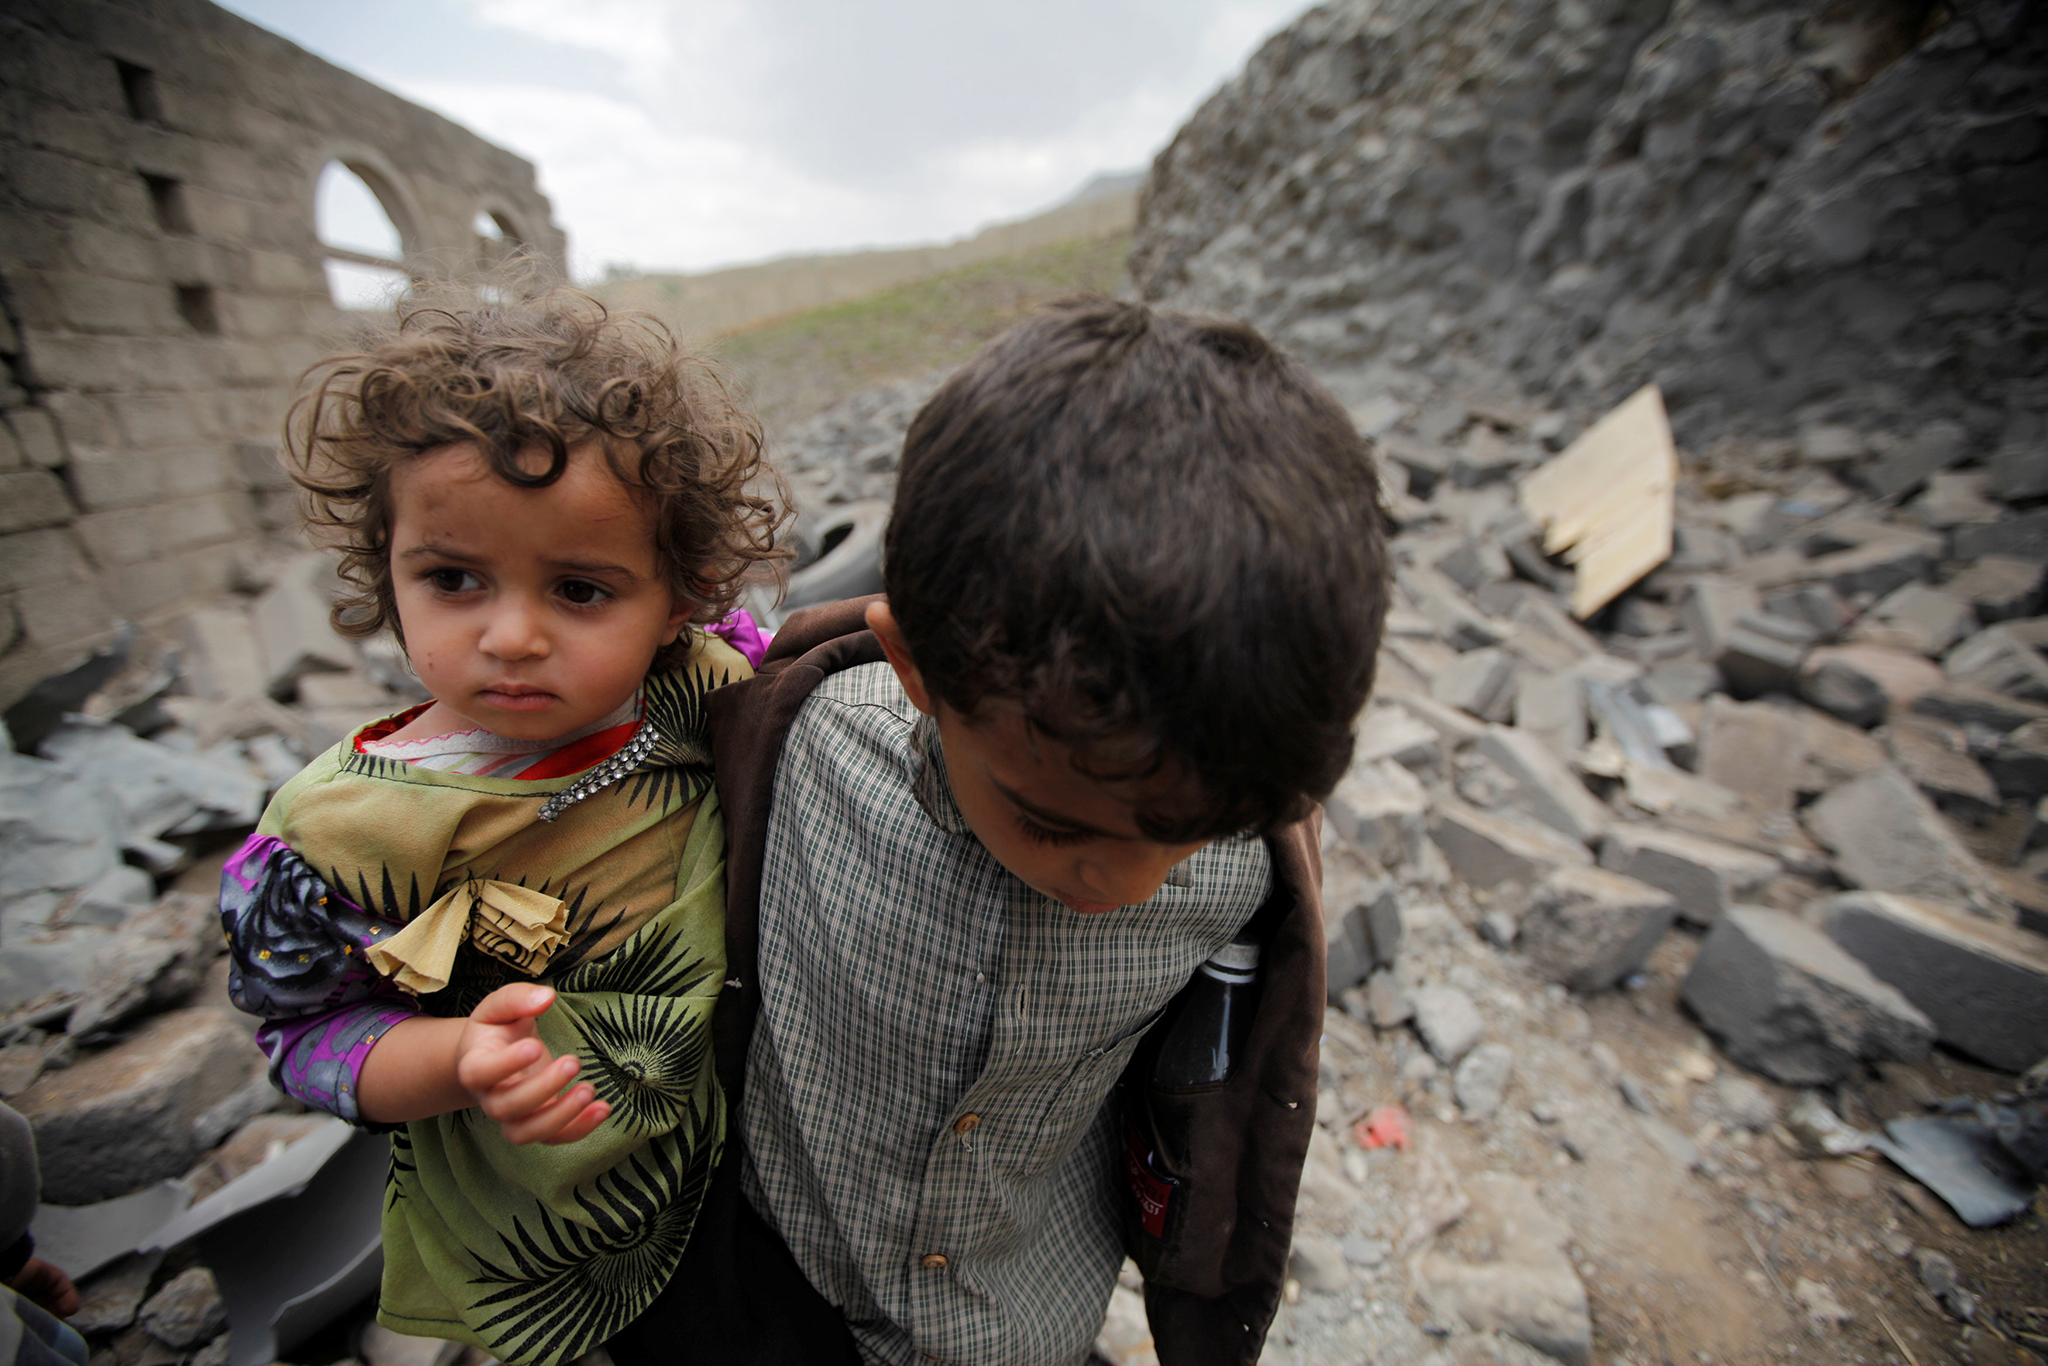 A boy carries his sister, as he walks on rubble of a houseafter it was destroyed by a Saudi-led air strike in Yemen's capital Sanaa, August 11, 2016. REUTERS/Mohamed al-Sayaghi